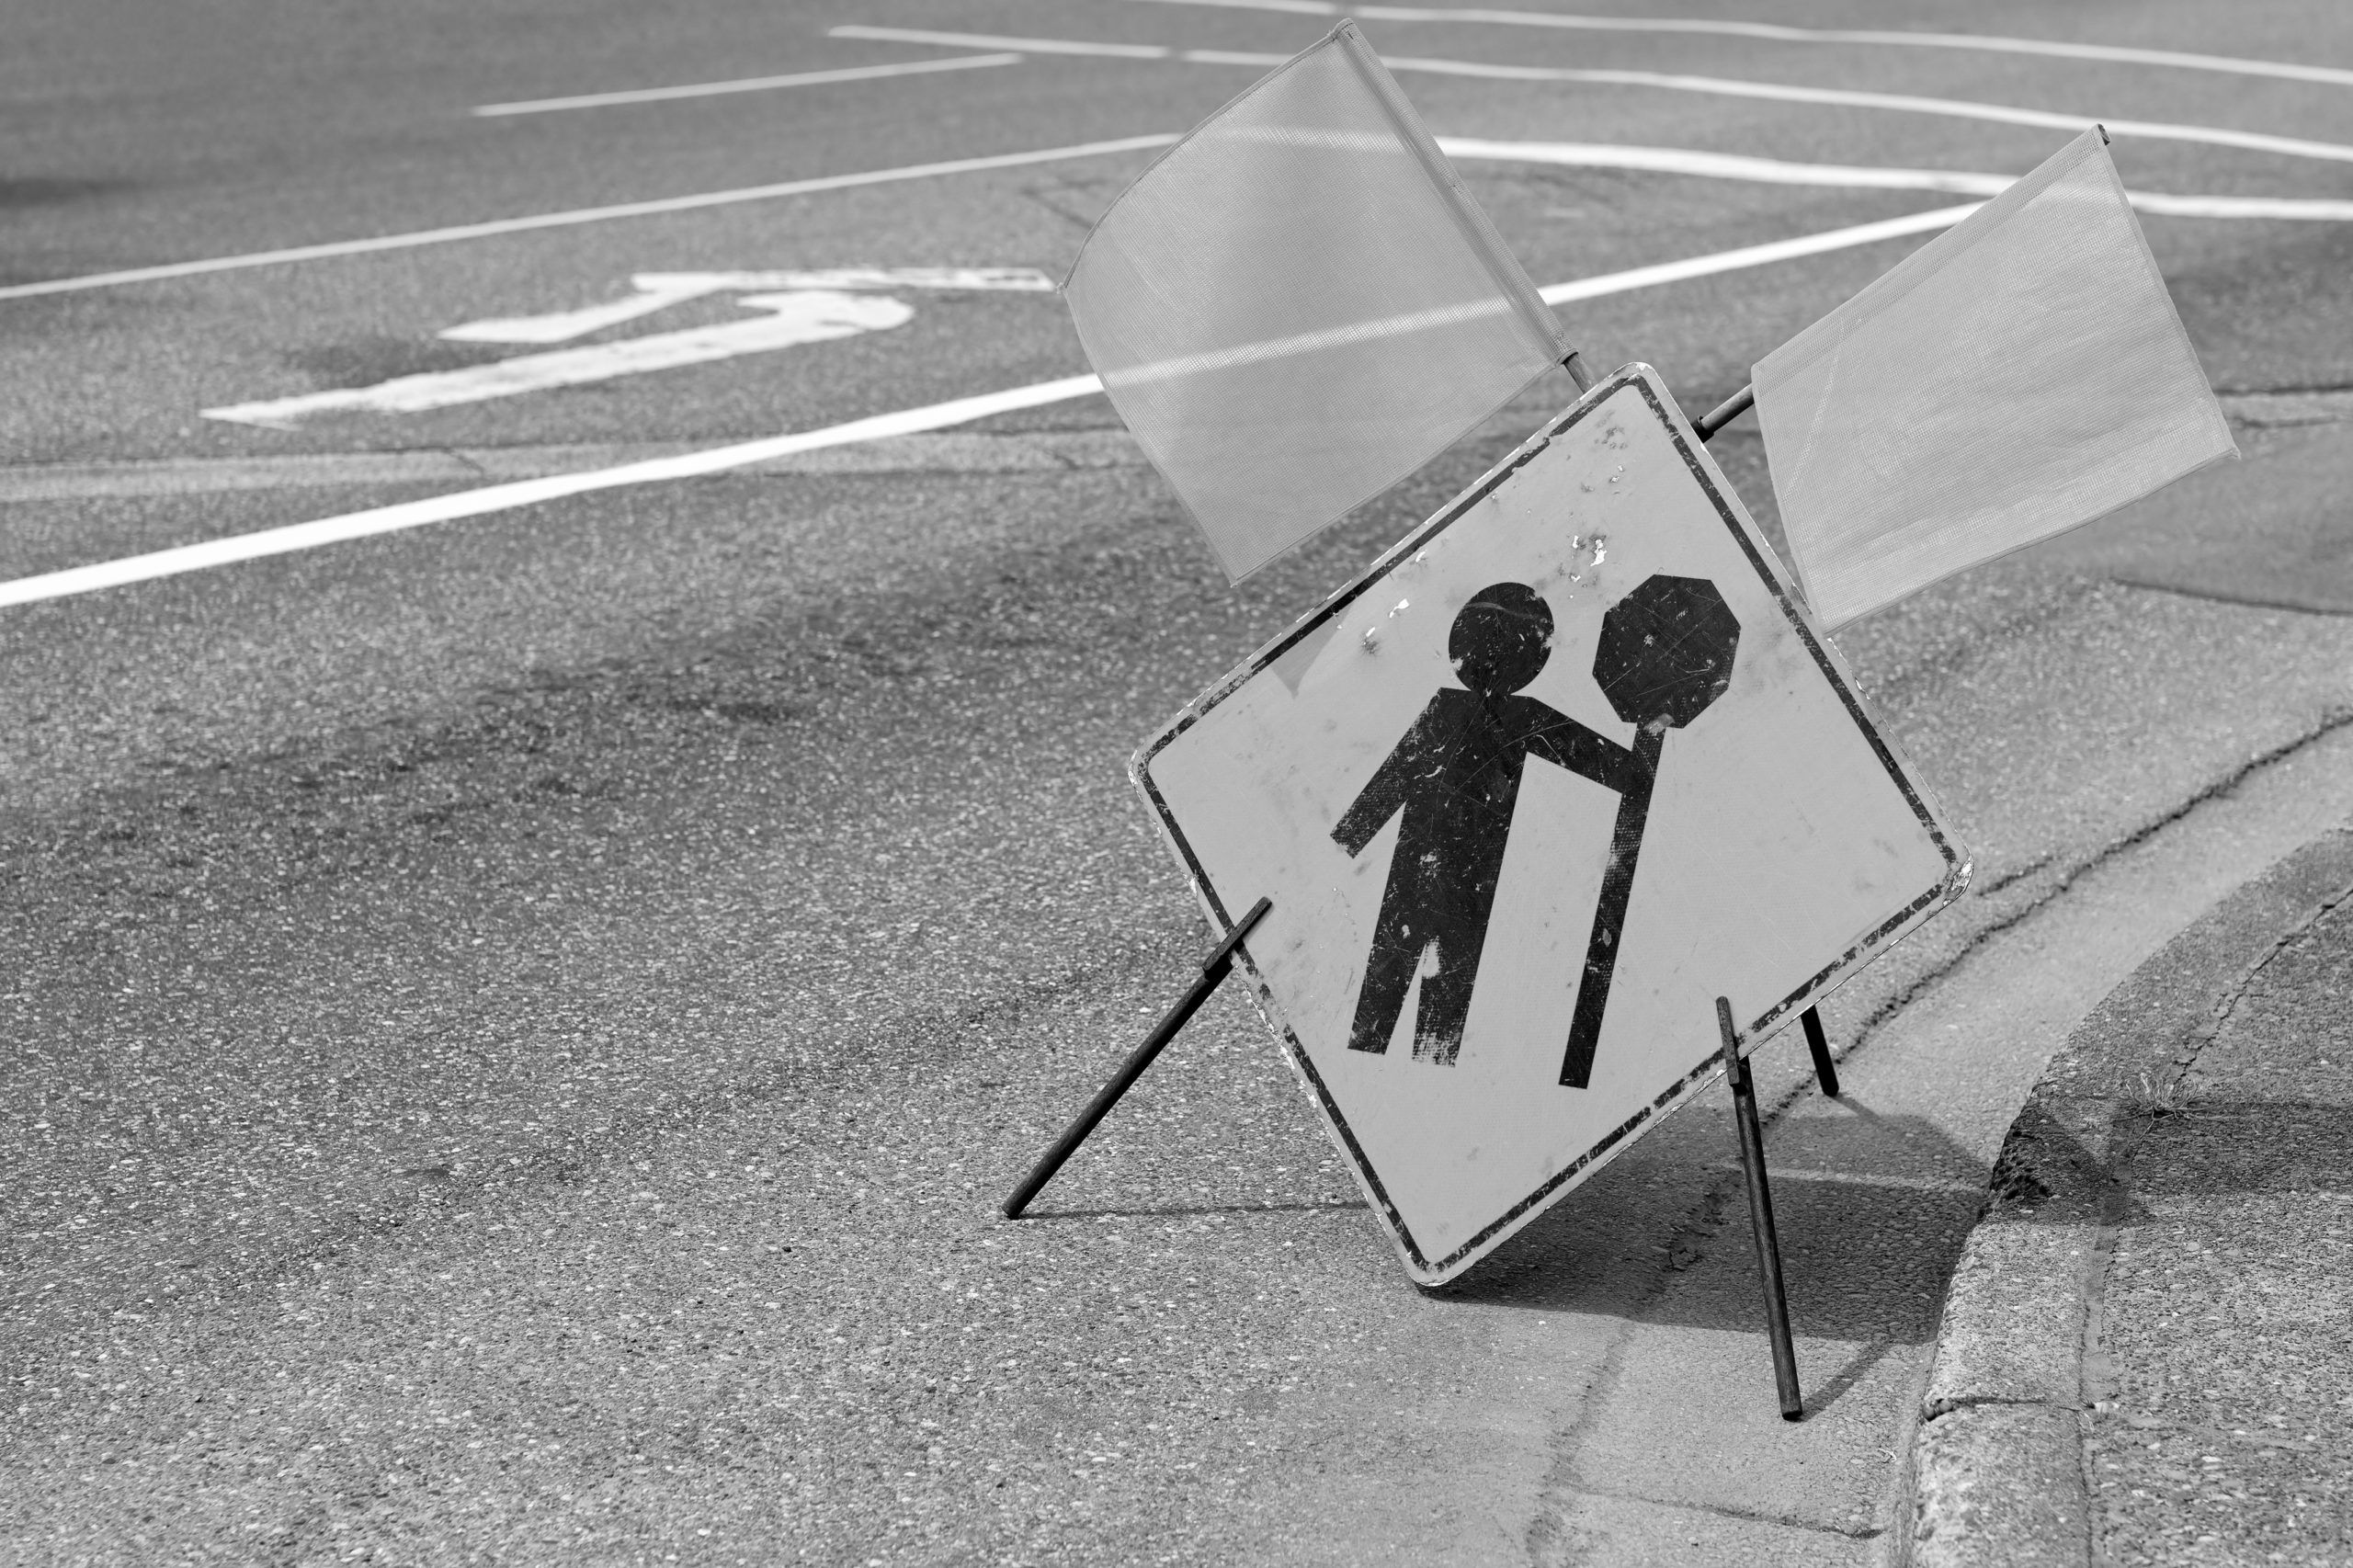 Construction flagger ahead sign on a street